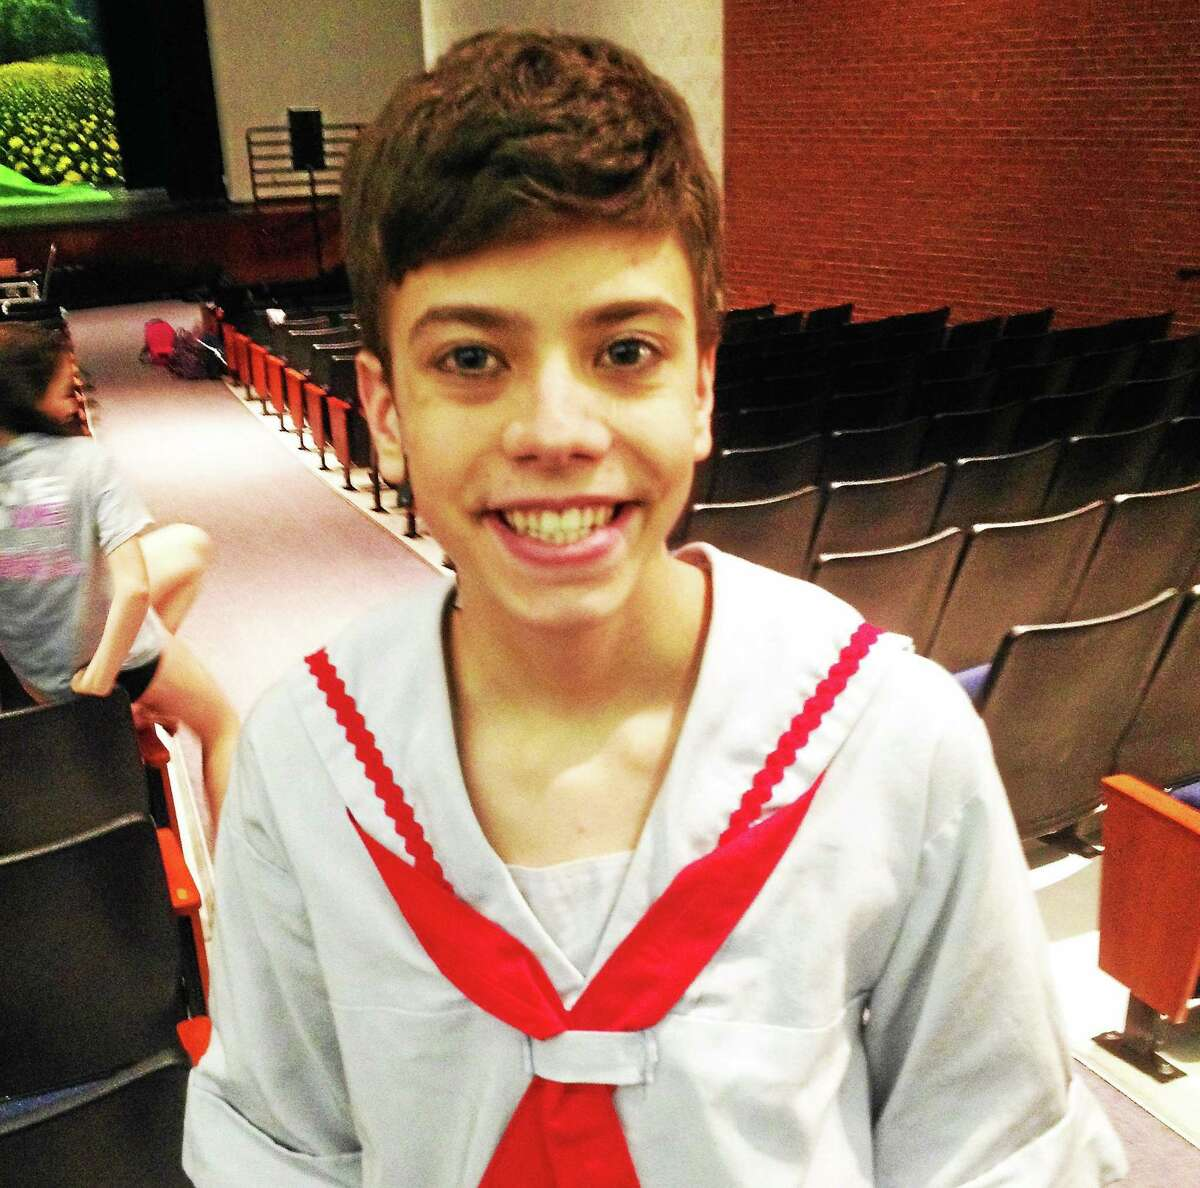 Eleventh-grader Mason Cordero transforms into Friedrich, one of the von Trapp children, for the classic Rodgers and Hammerstein musical.